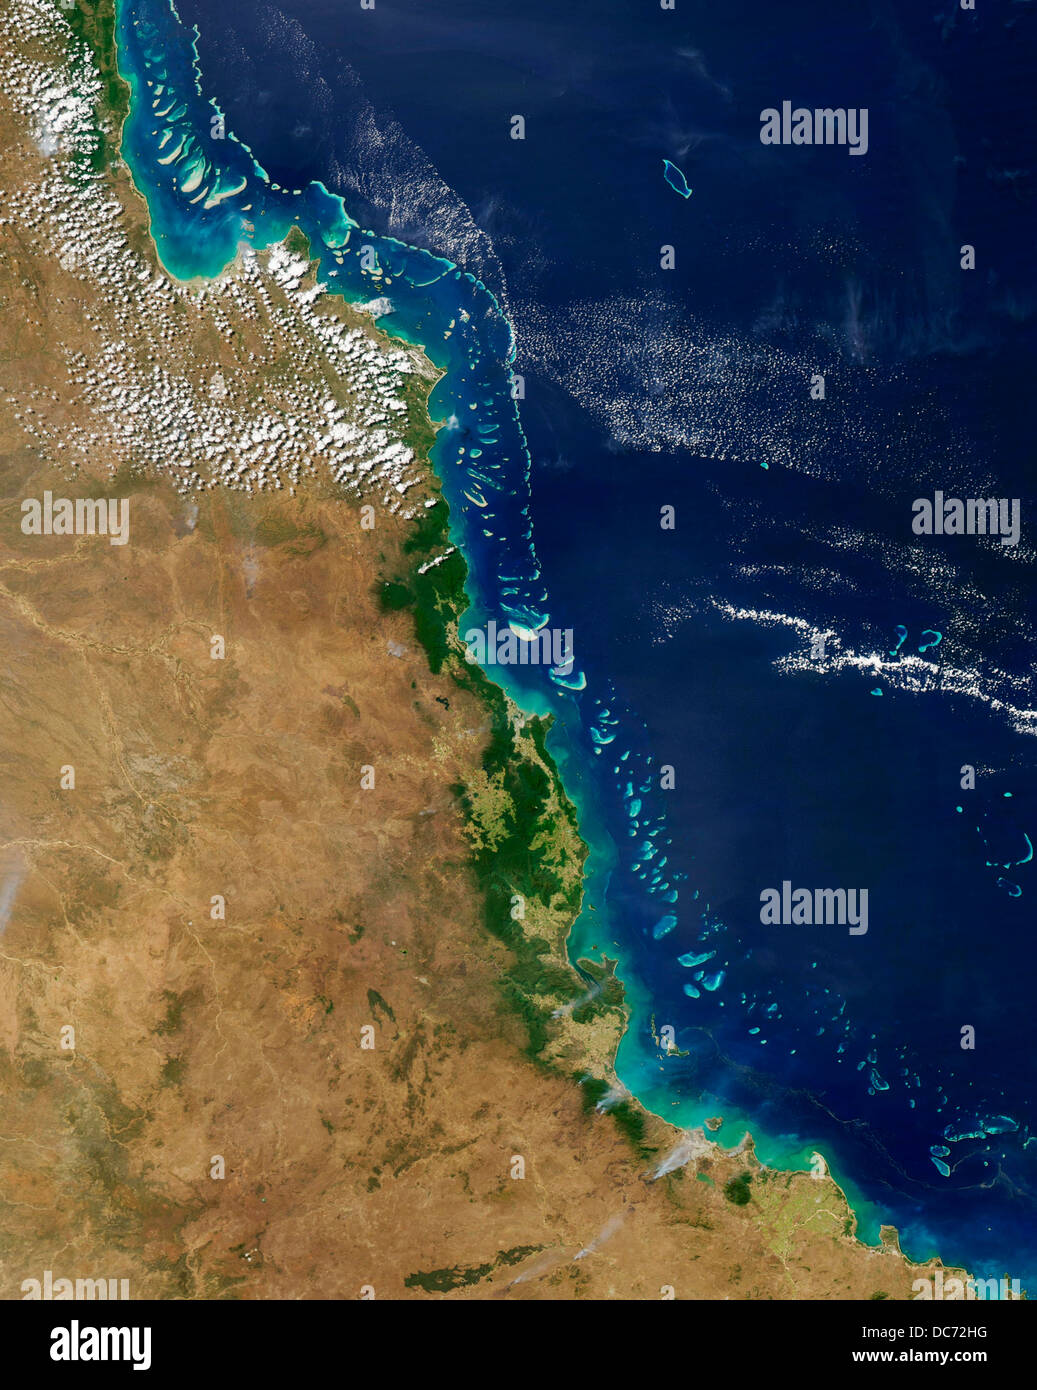 Barrier Reef Australia Map.Satellite View Of The Great Barrier Reef Australia Stock Photo